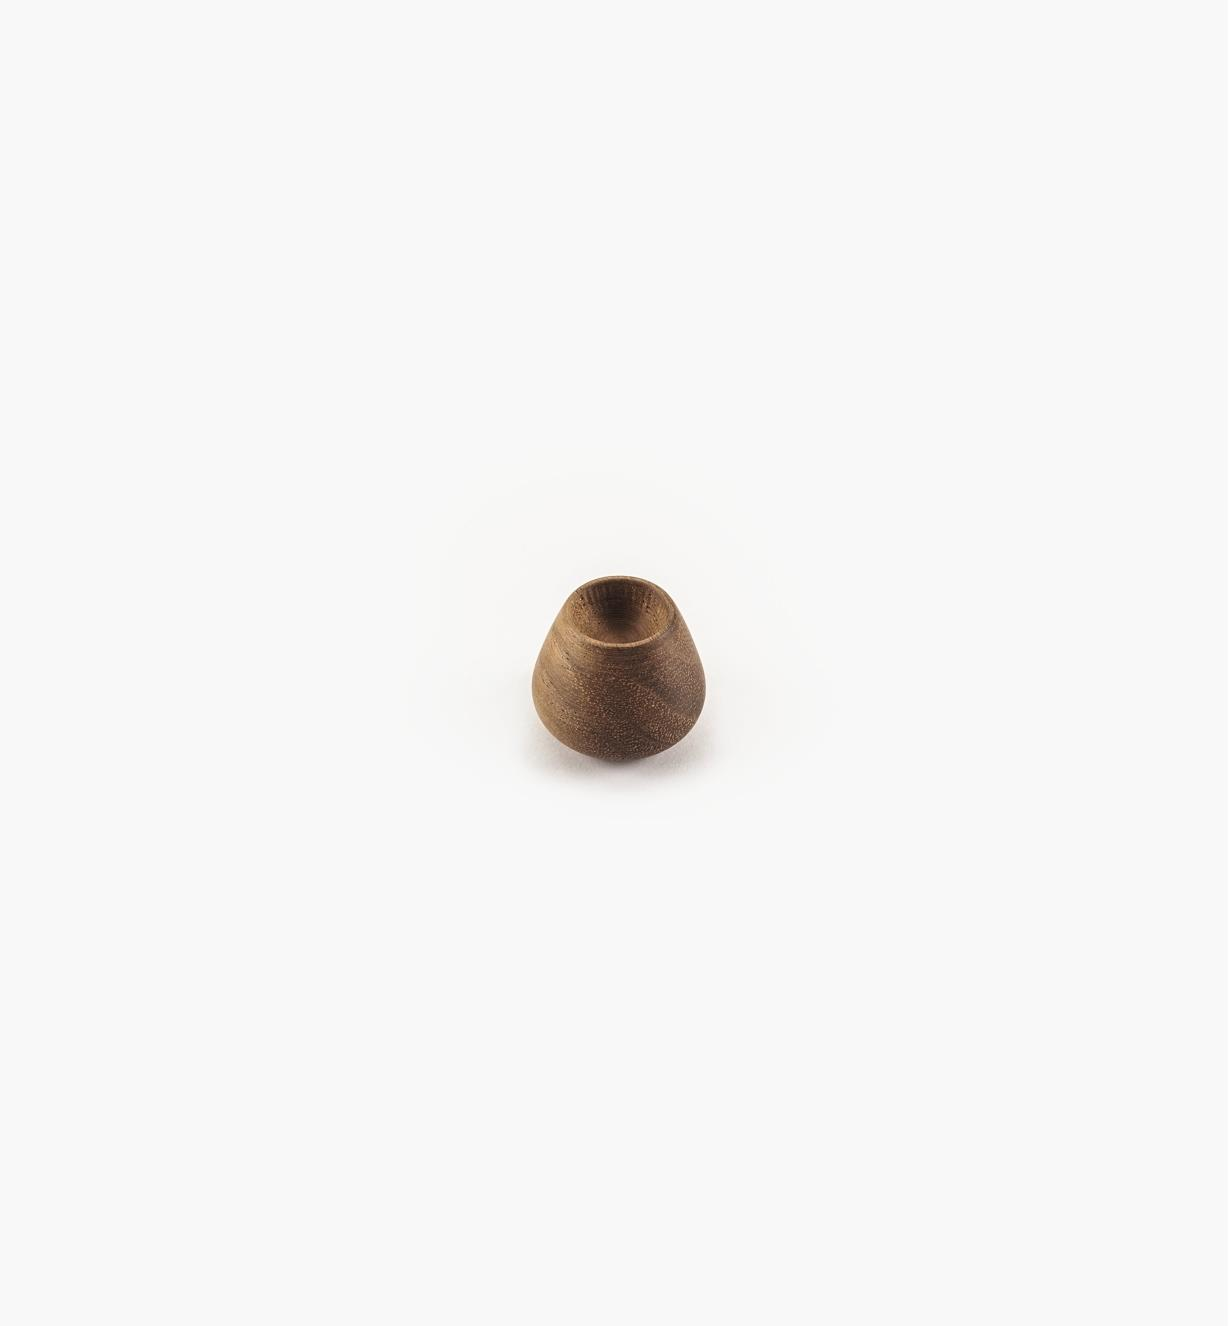 02G2022 - 24mm x 20mm Flowerbud Danish Walnut Knob